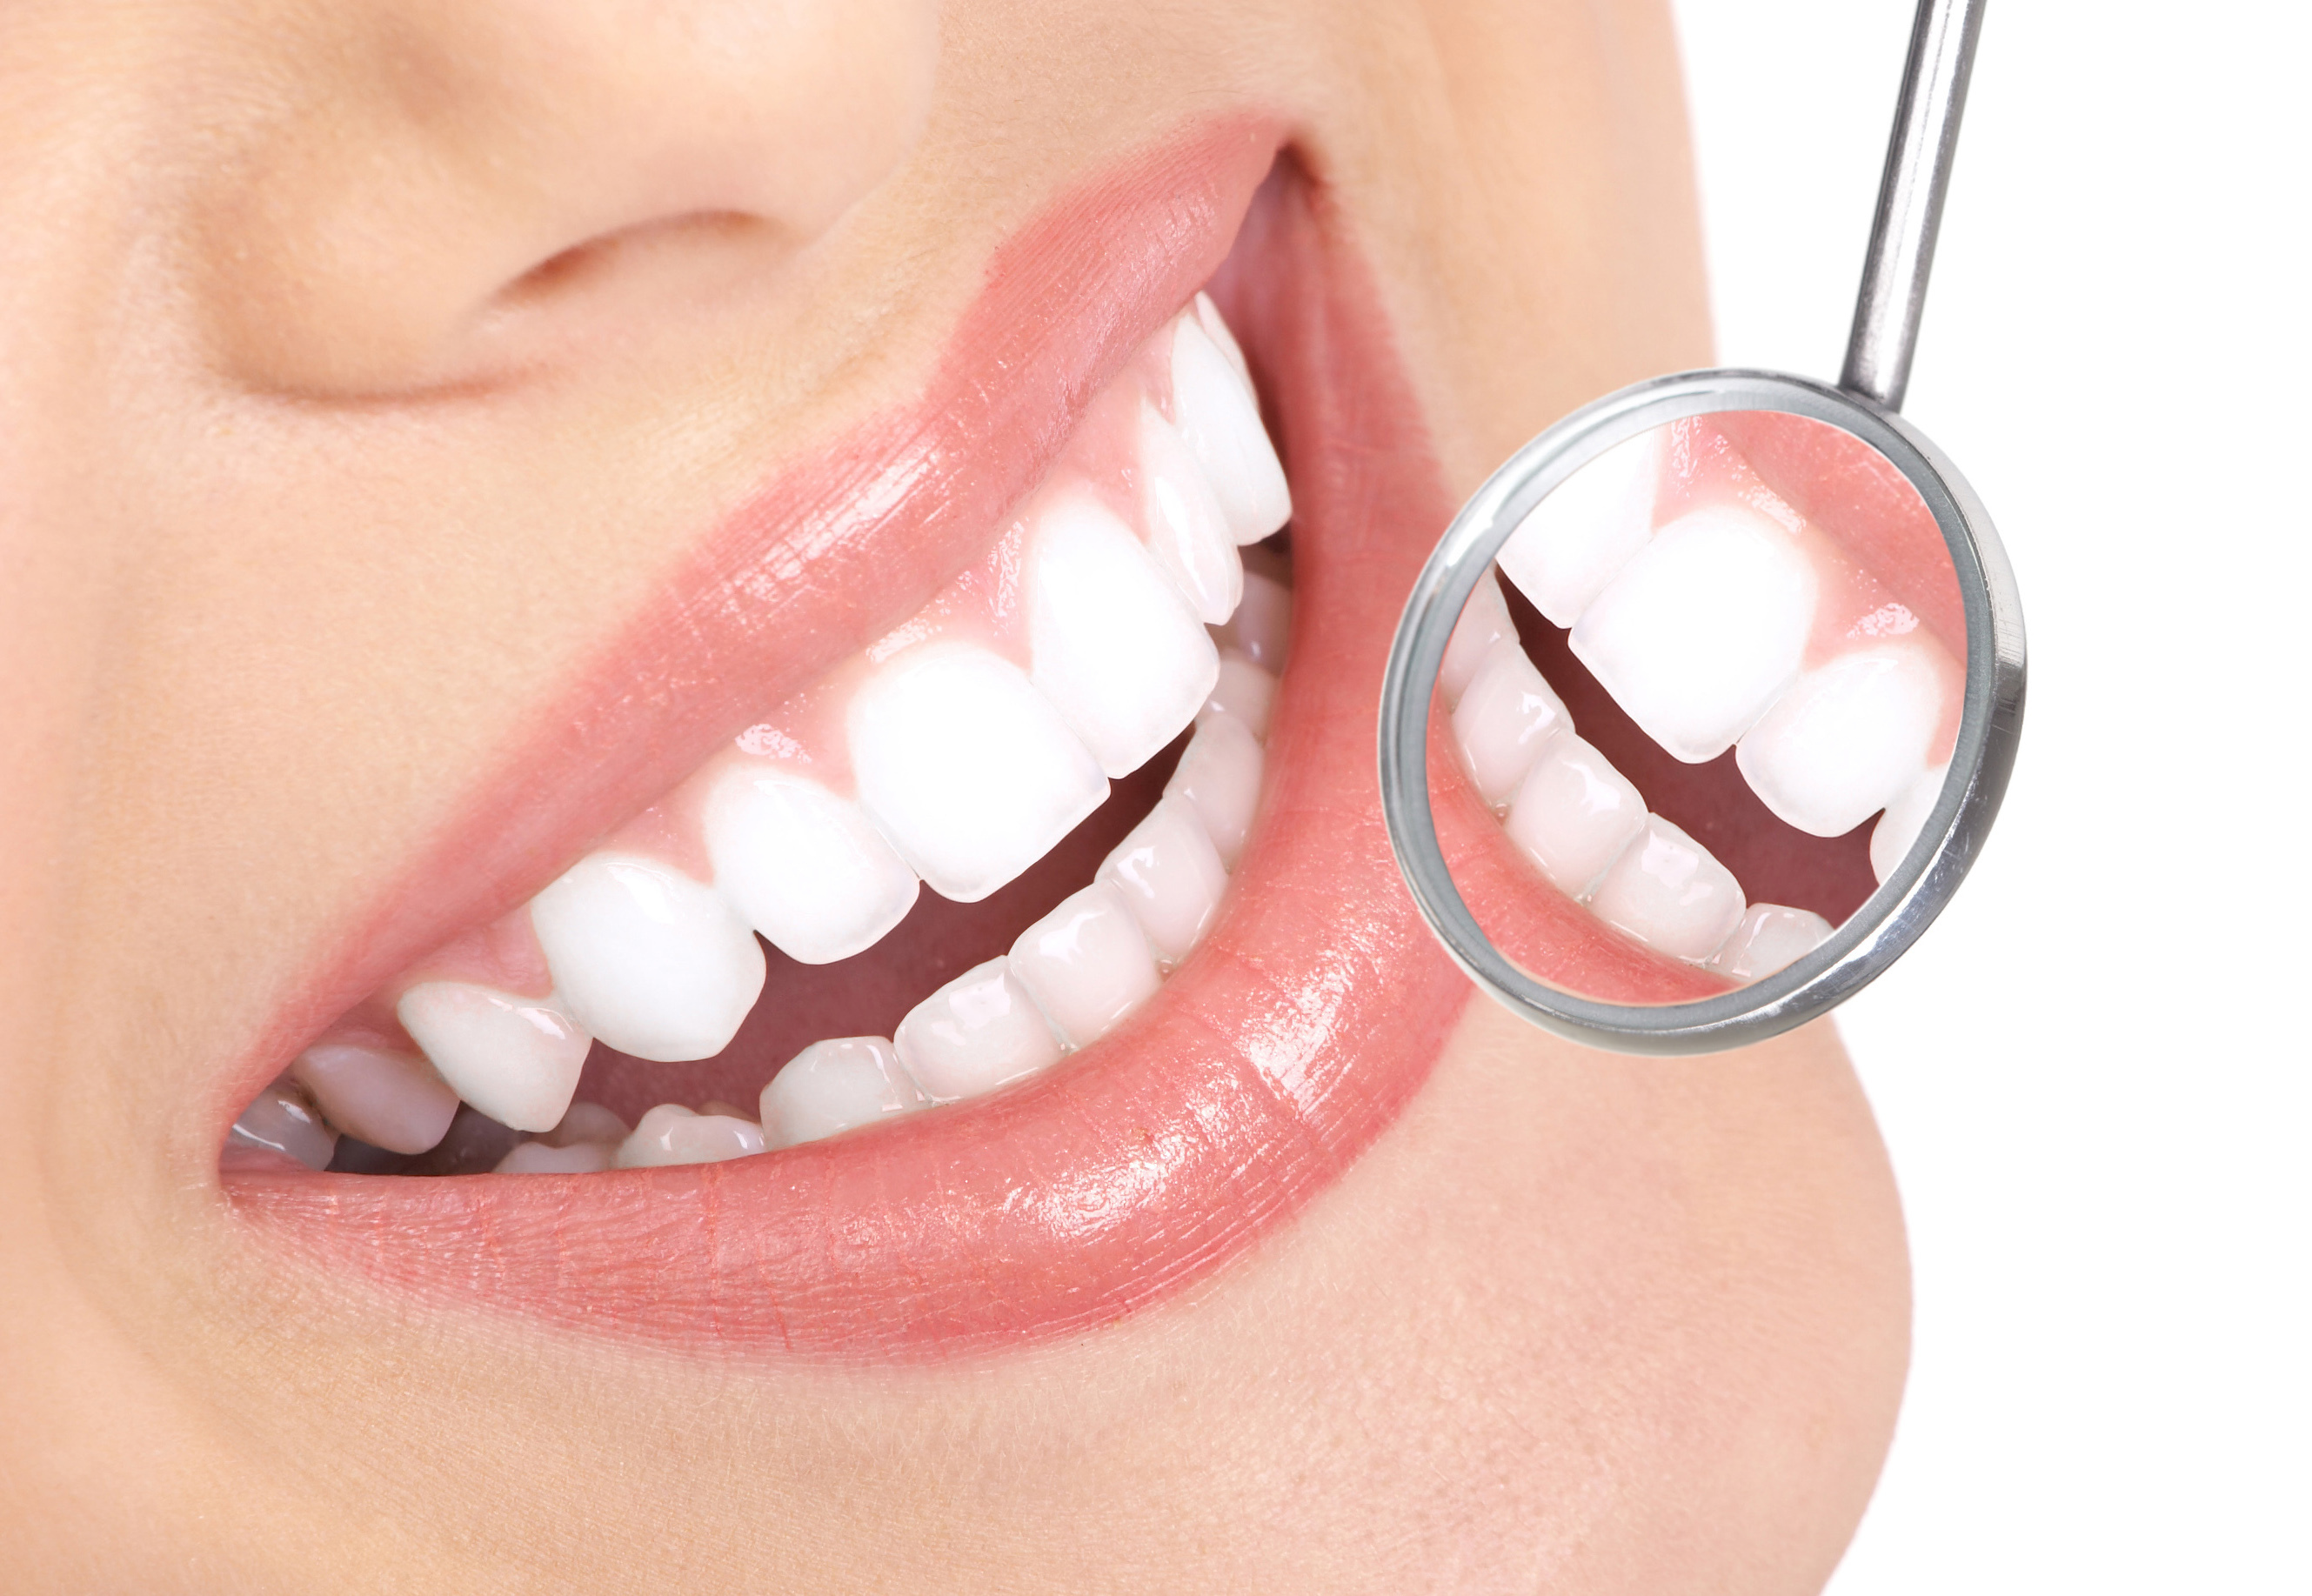 Tooth Bonding Benefits for the Dental Health